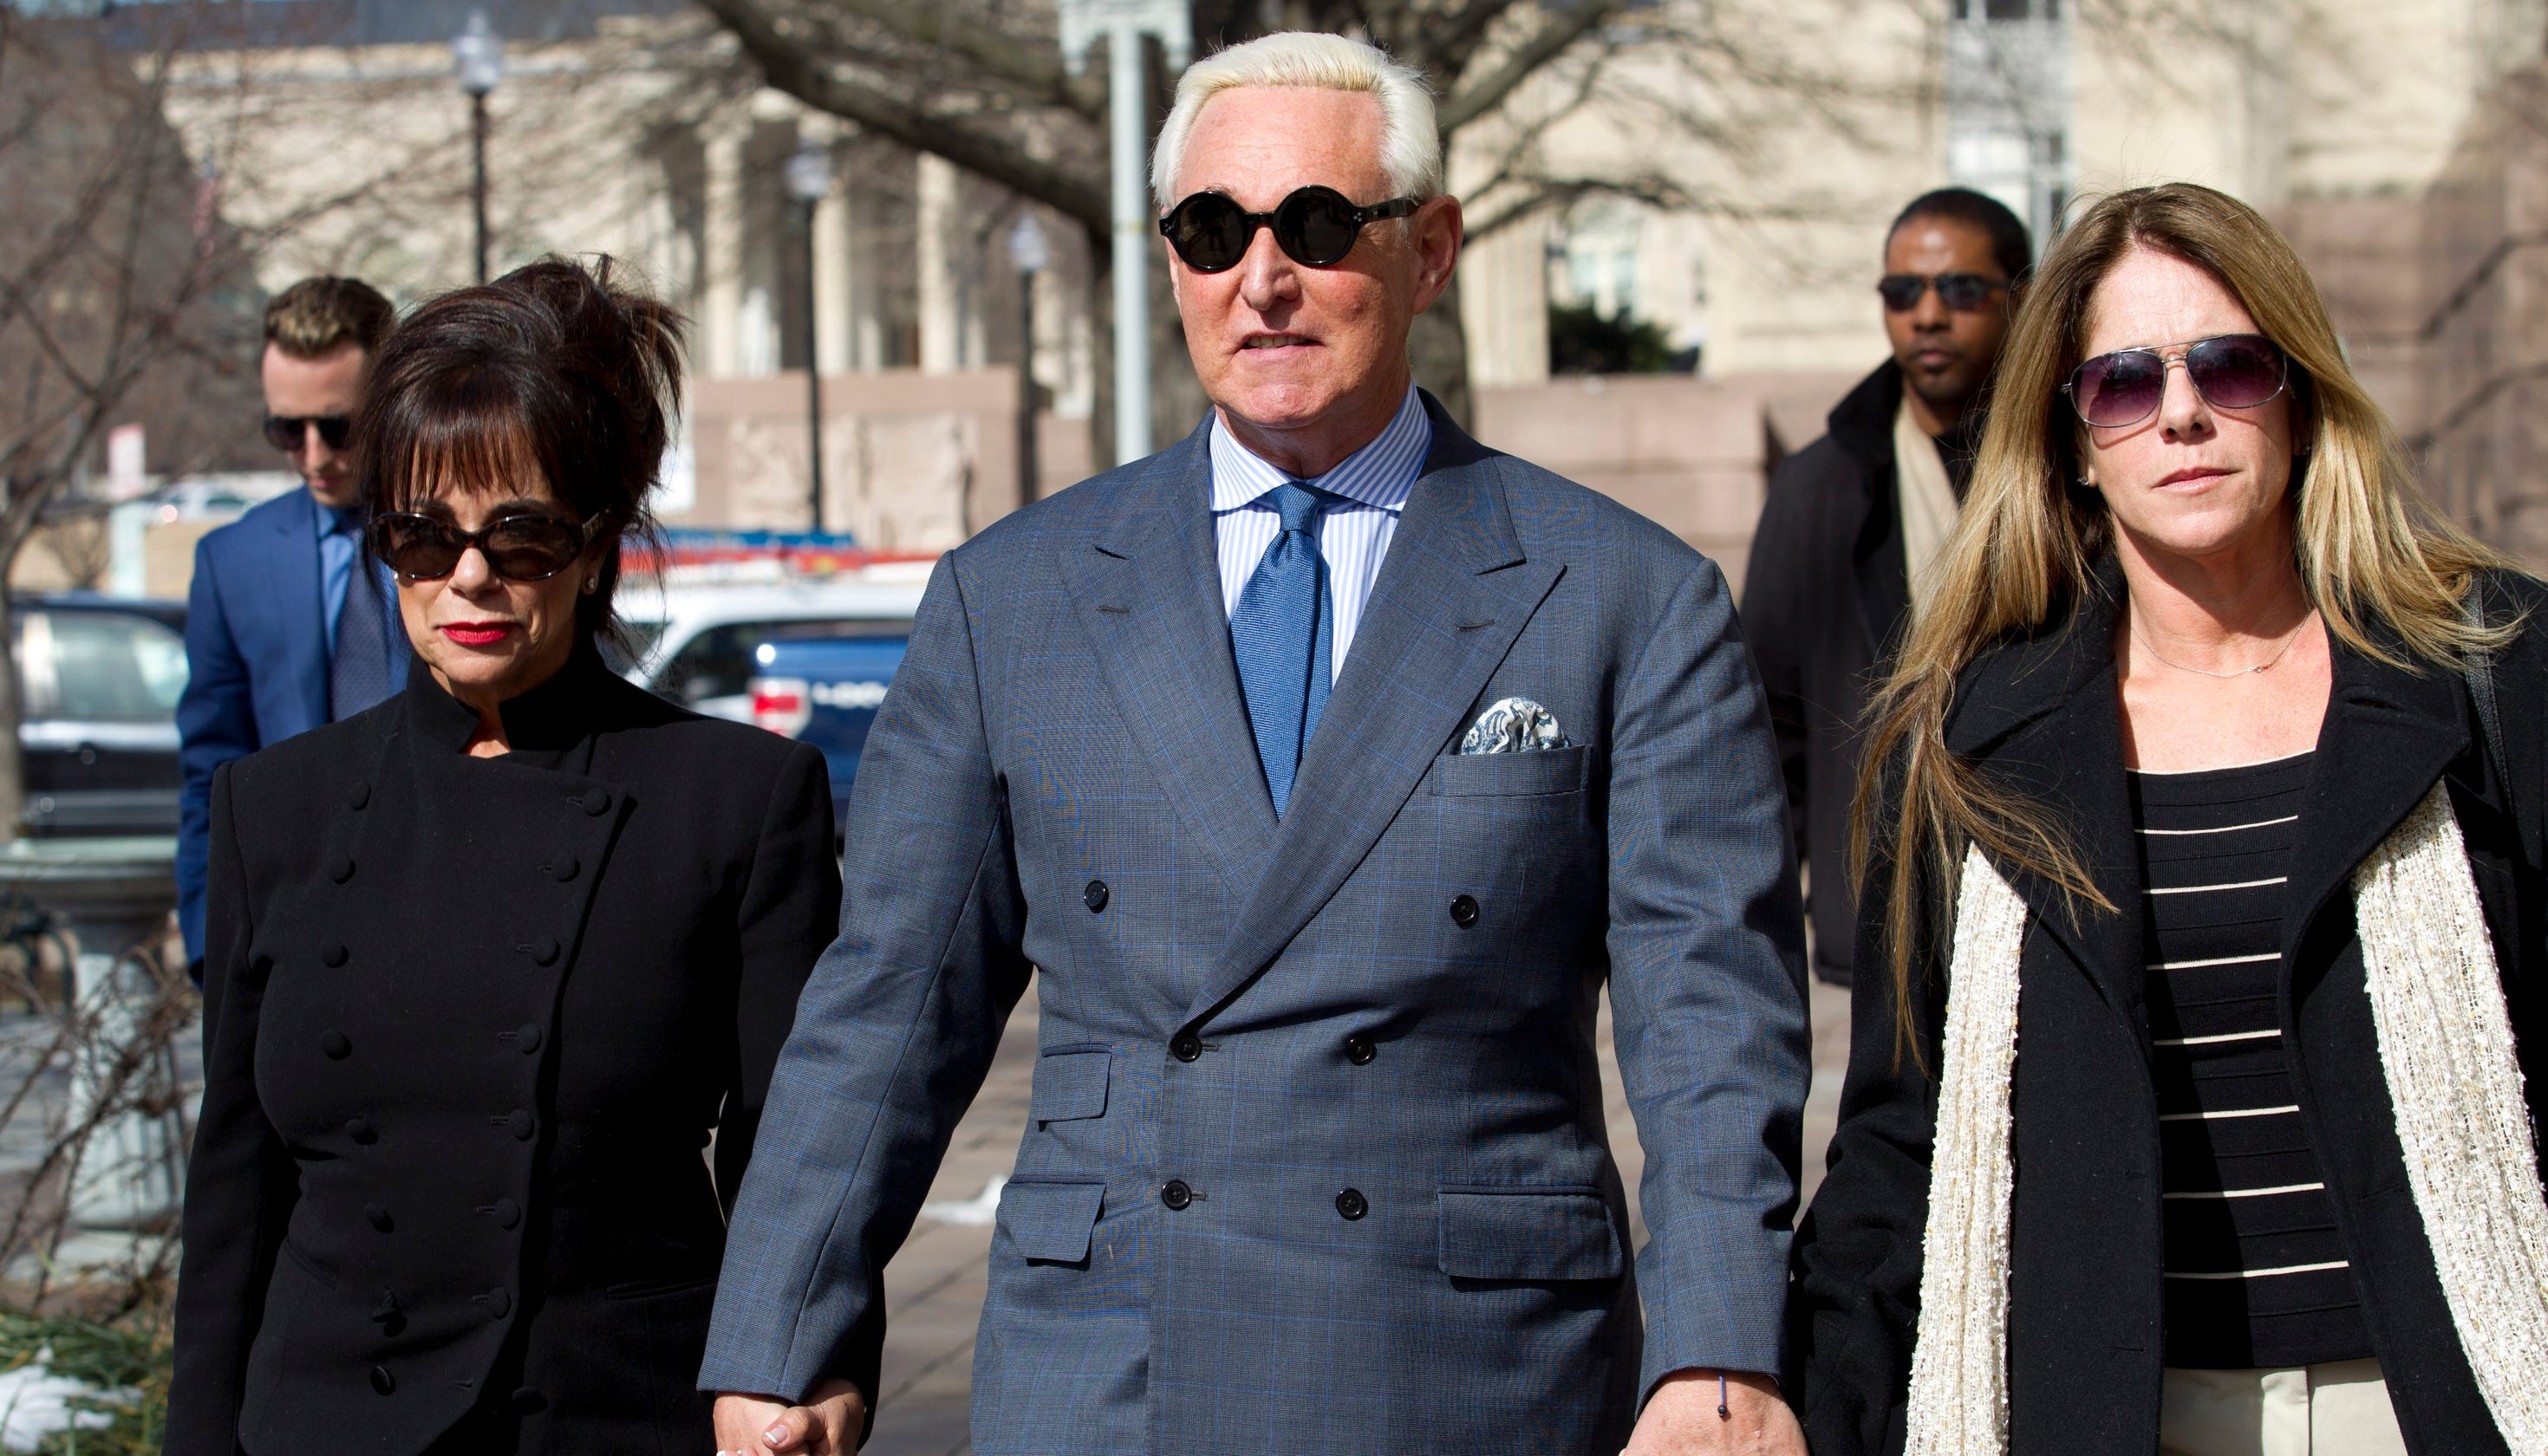 Roger Stone, a GOP operative and Trump ally, faces trial on accusations he lied to Congress thumbnail